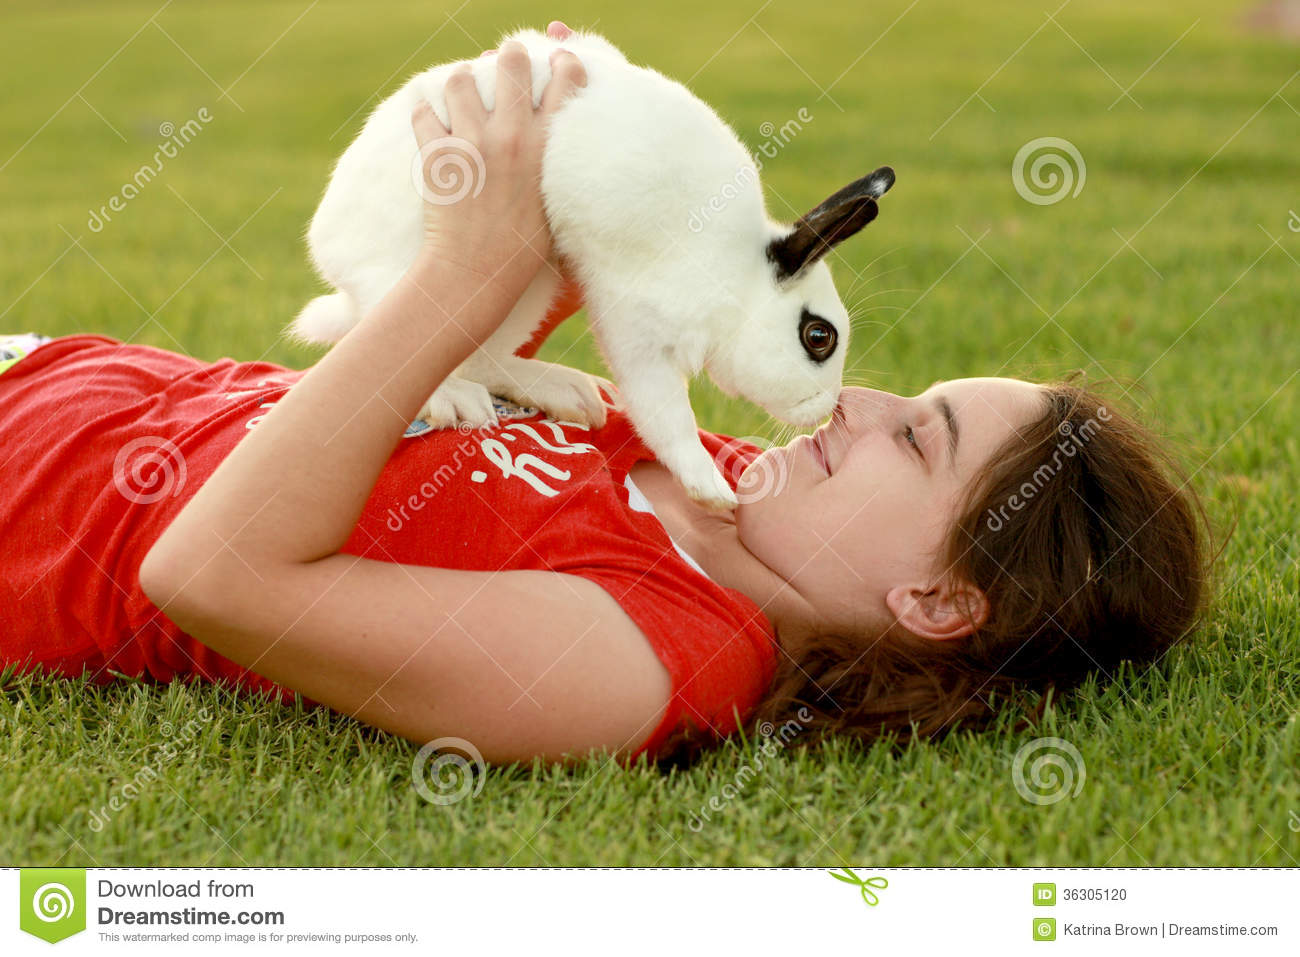 Enfant et son animal familier Bunny Playing Outdoors